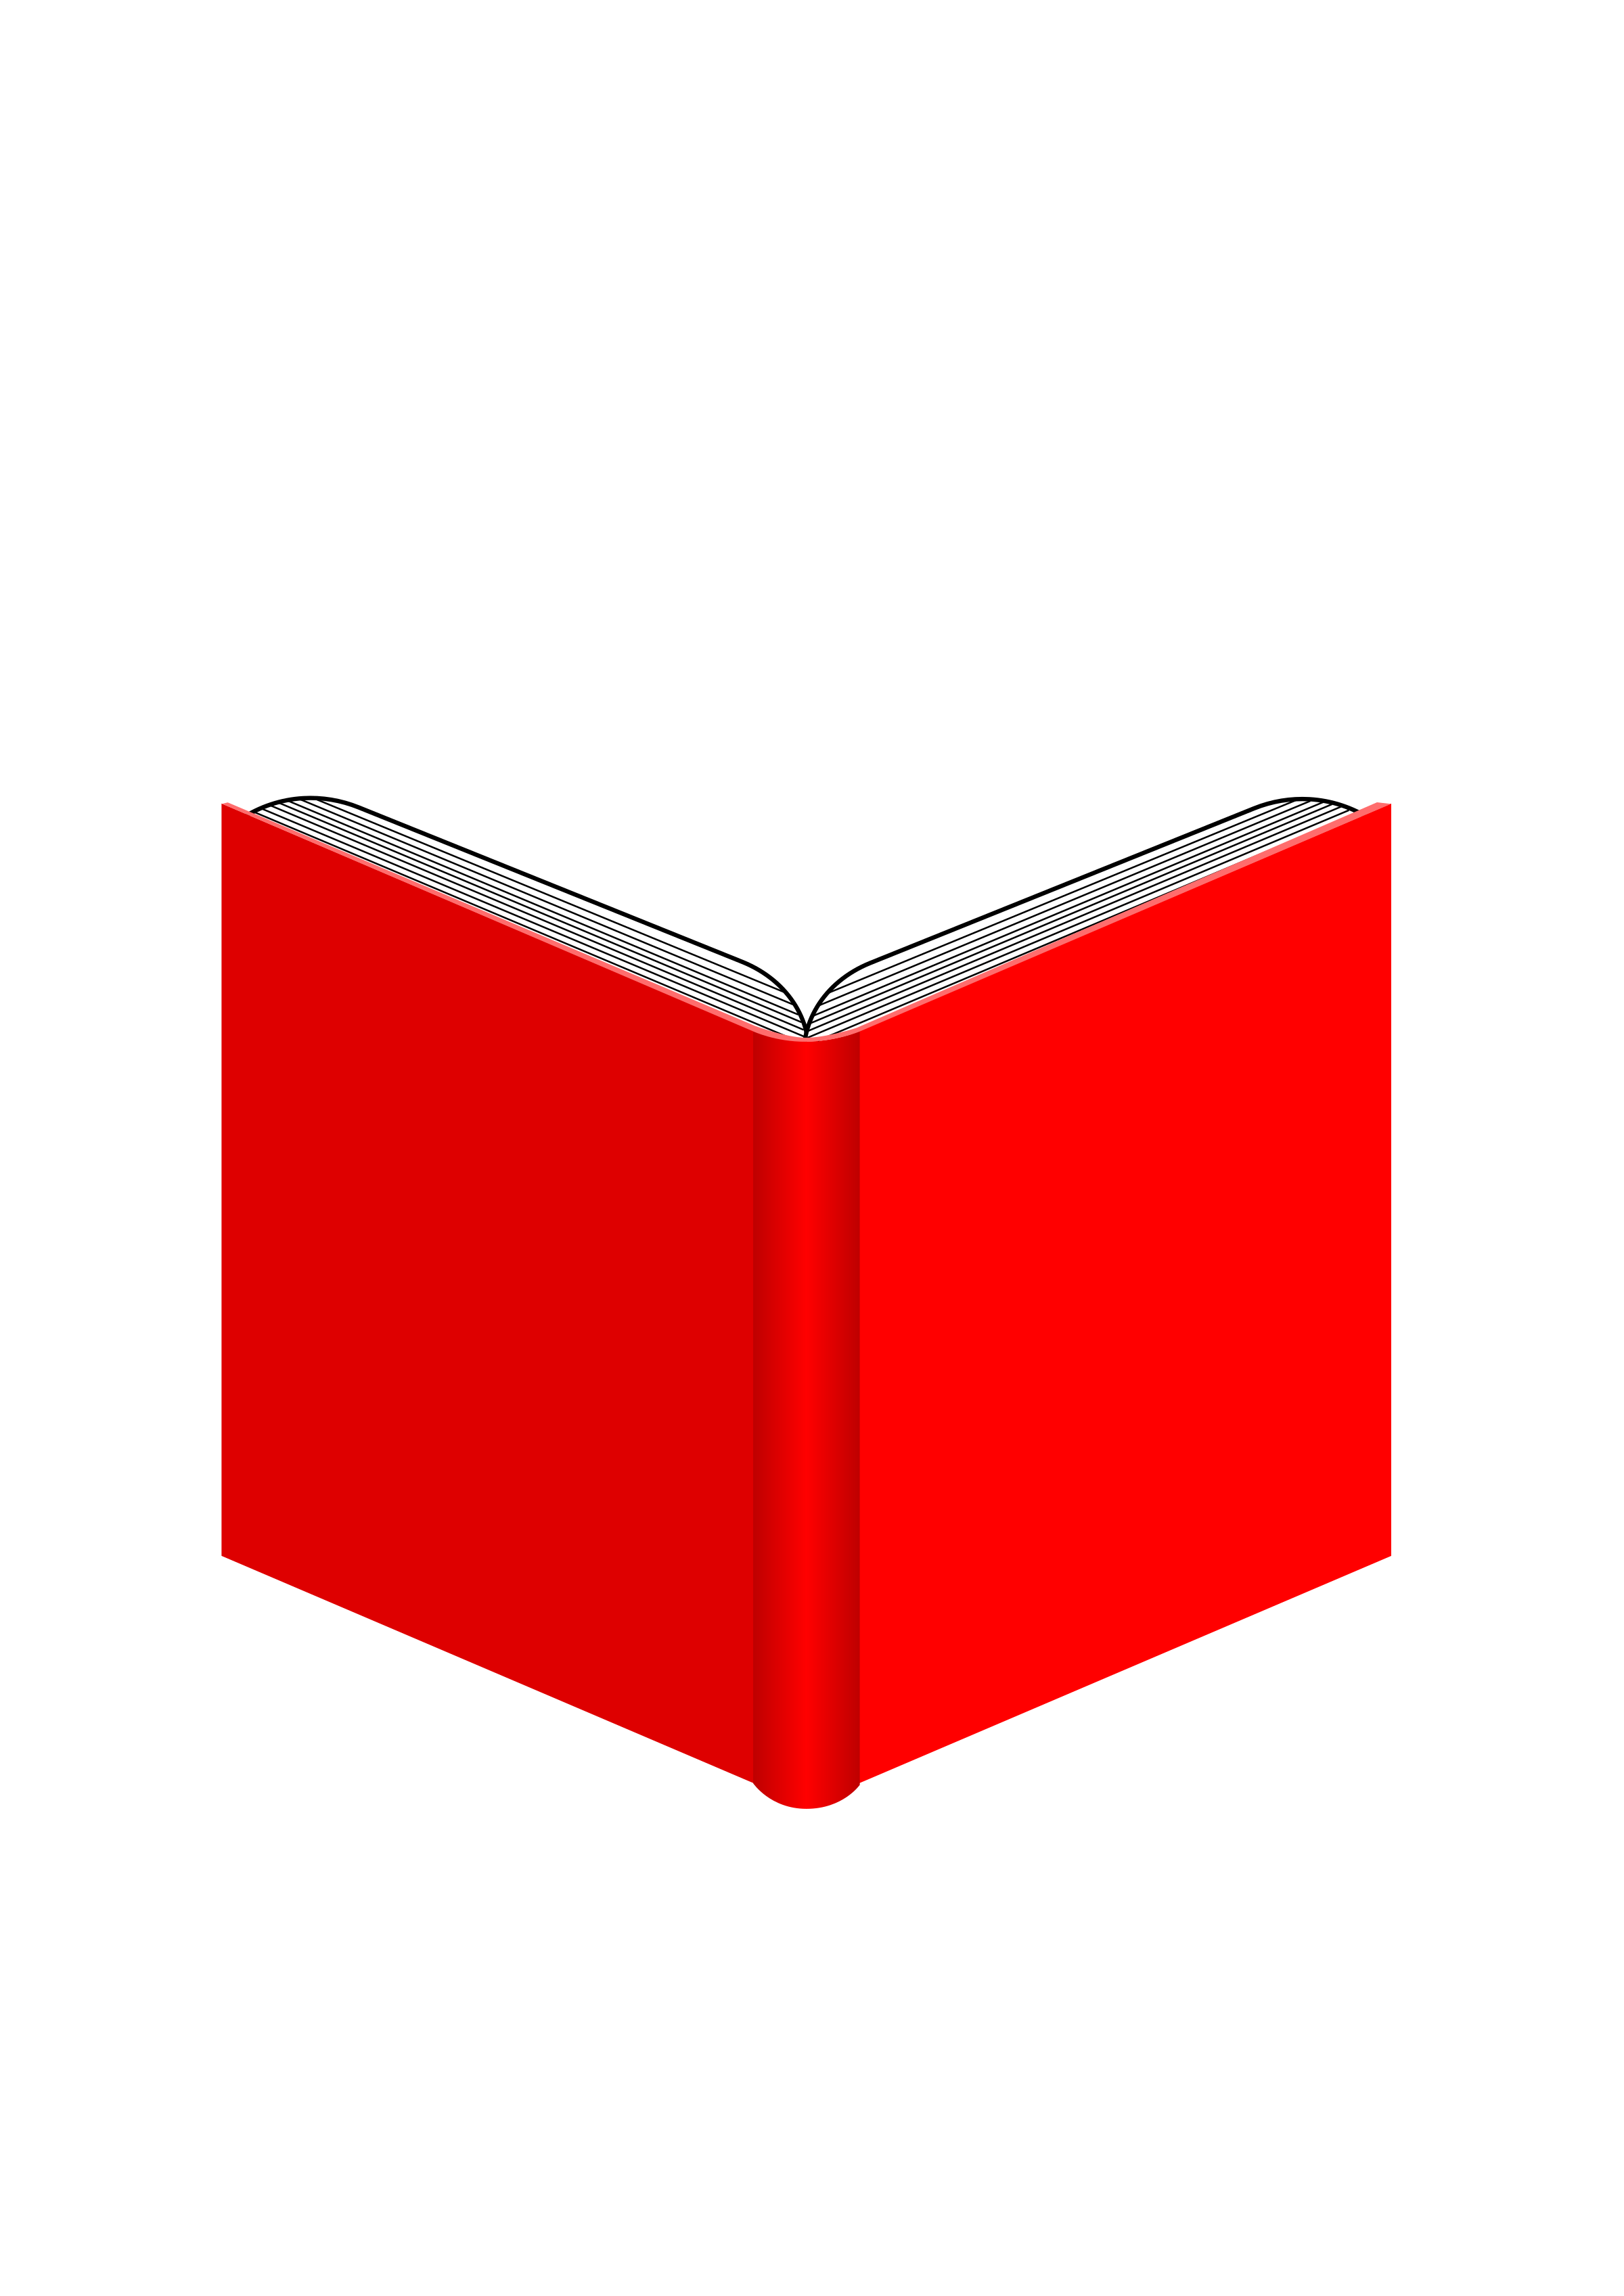 Red clipart open book #12